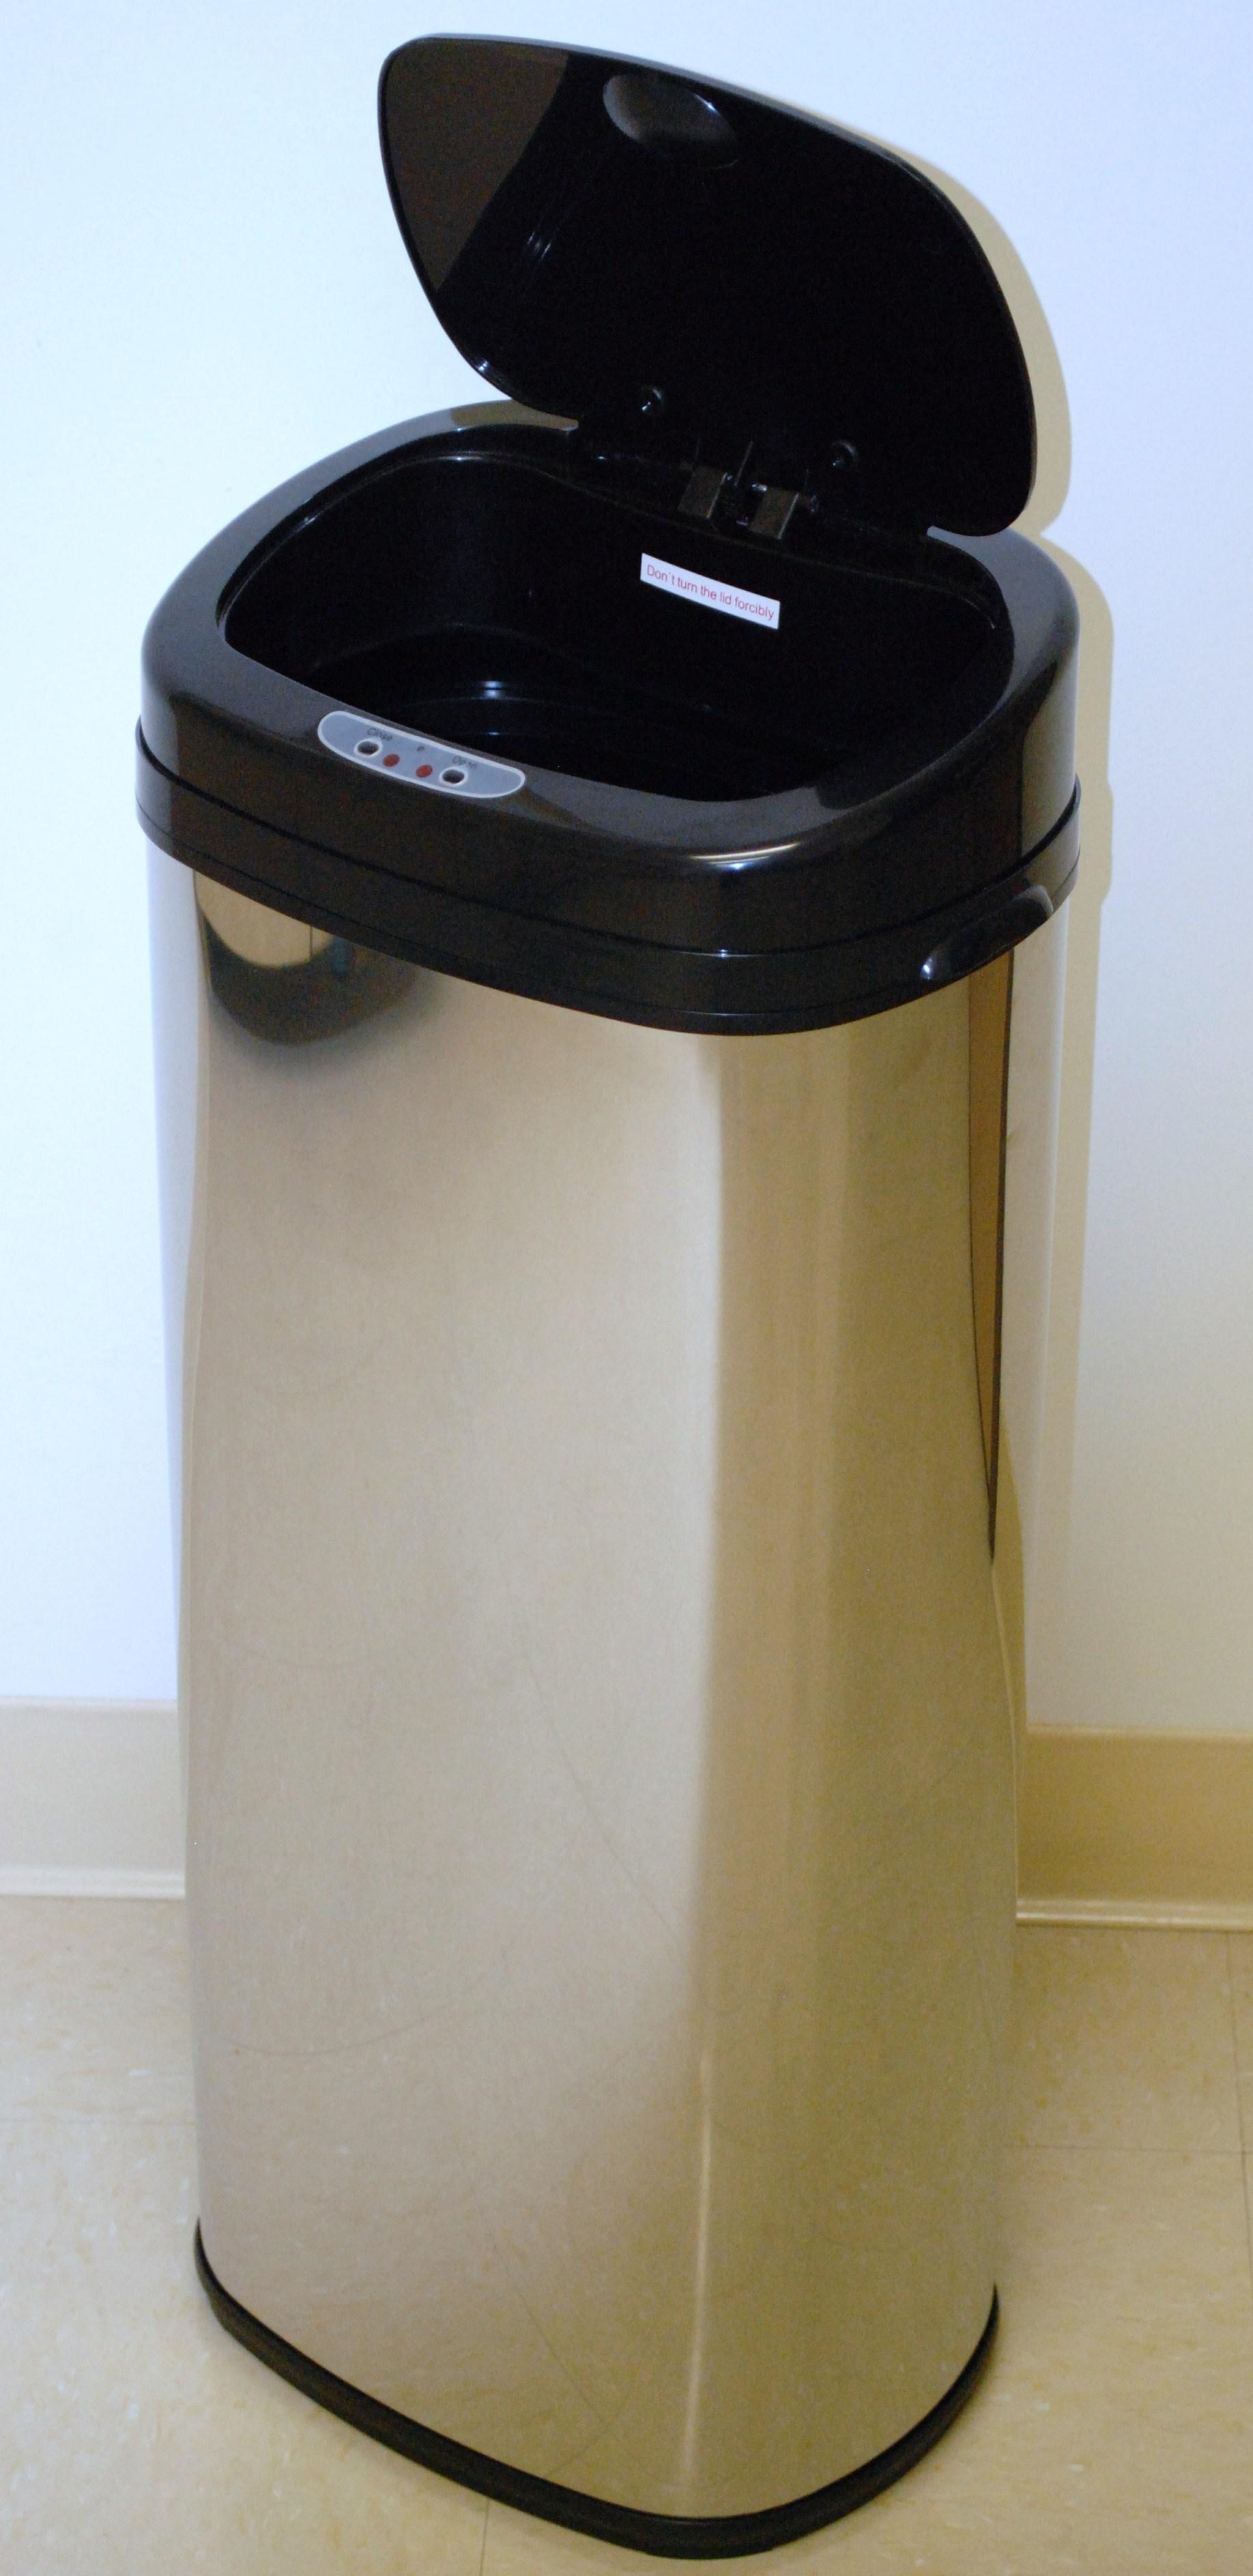 InVion Touchless 13.2-gallon Automatic Trash Can